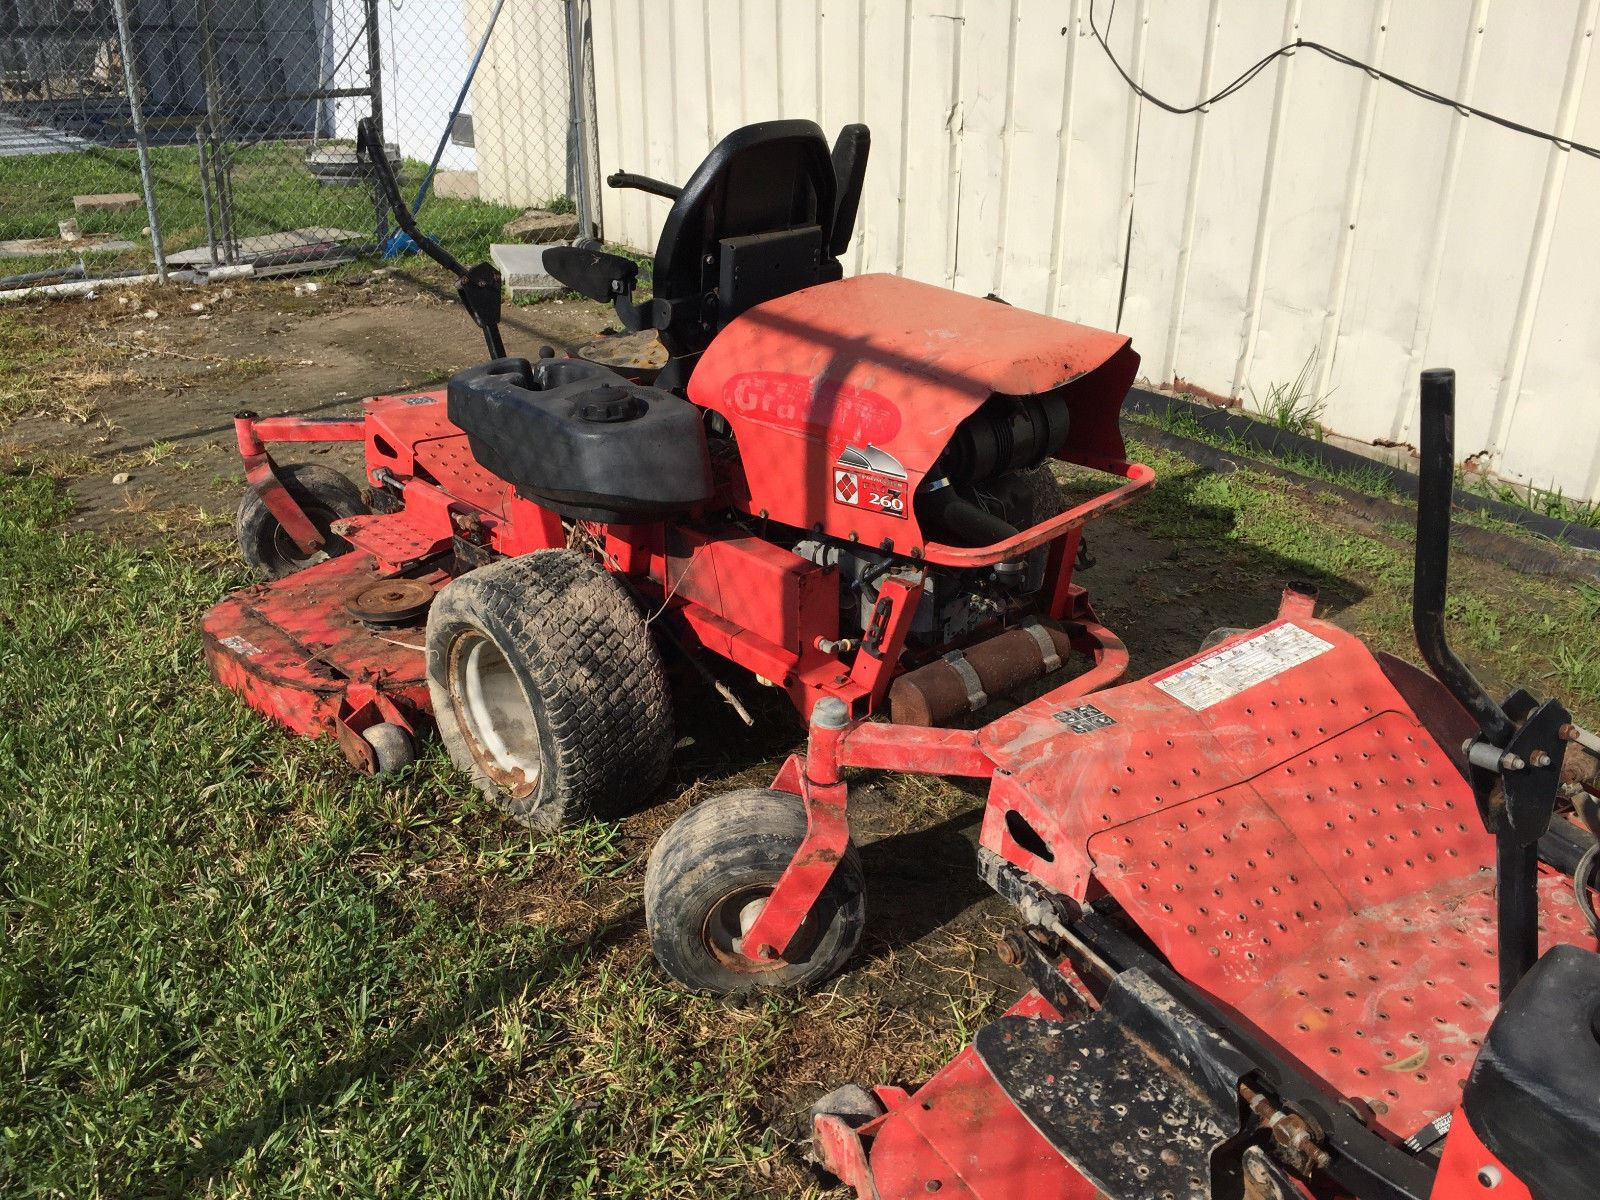 Gravely Pro Turn Commercial Lawn Mower